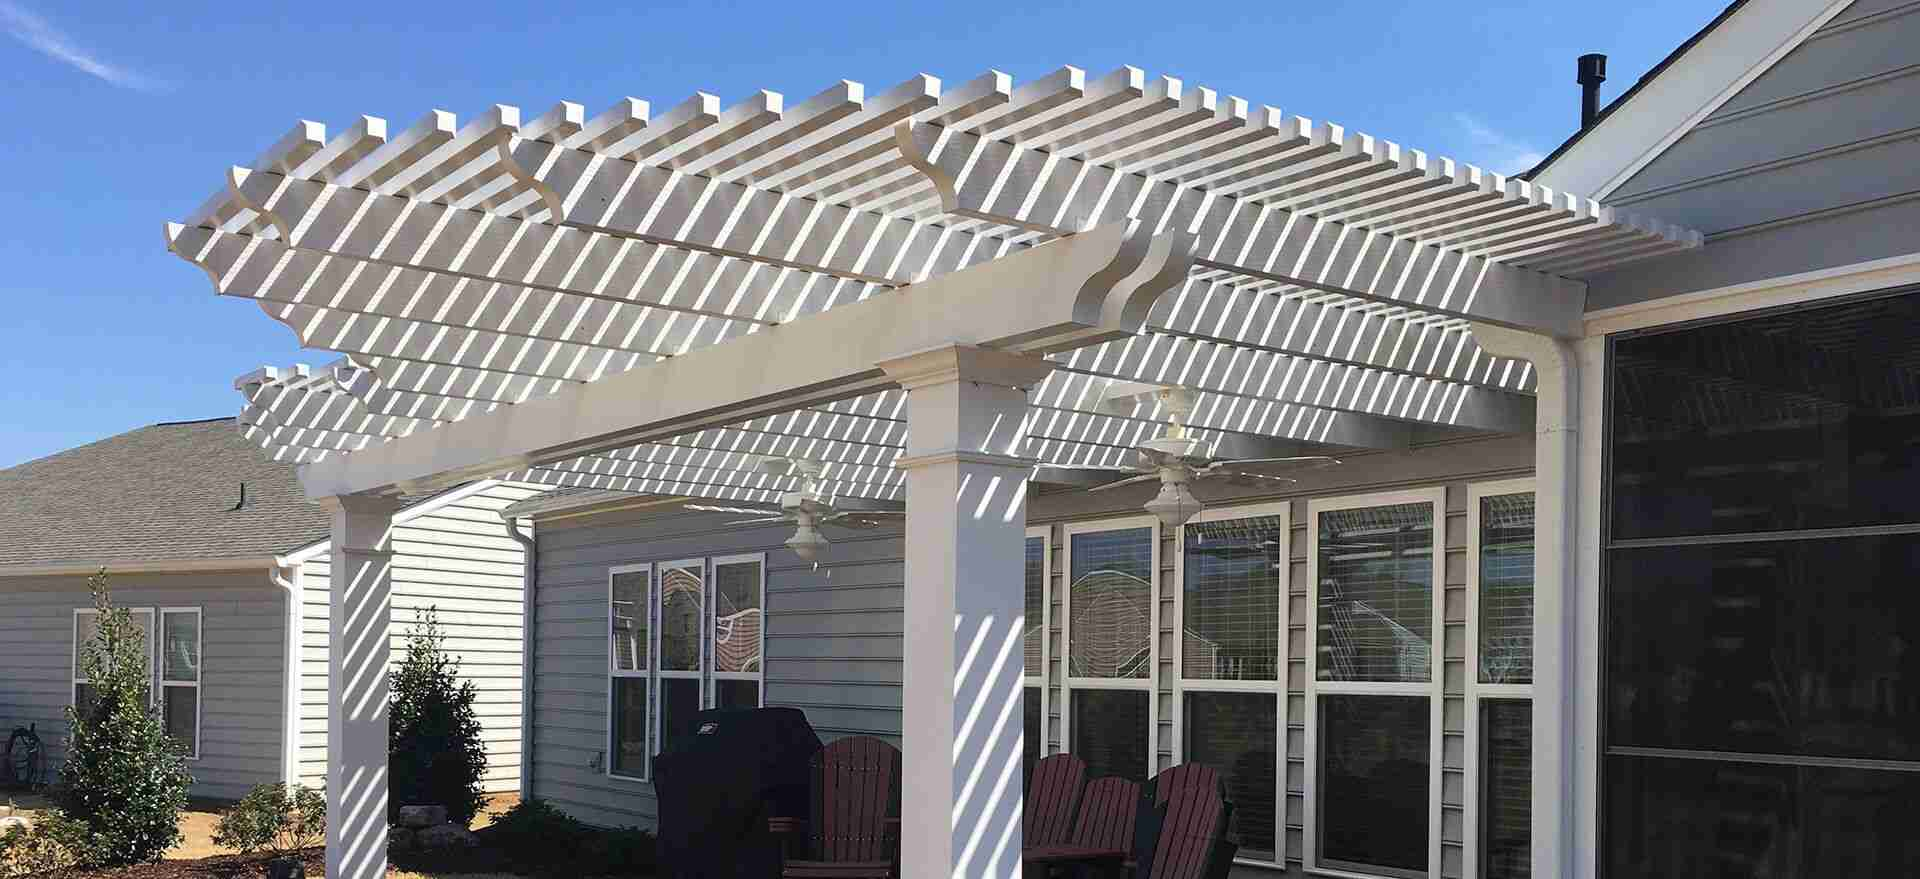 A white wooden pergola attached to a back porch area